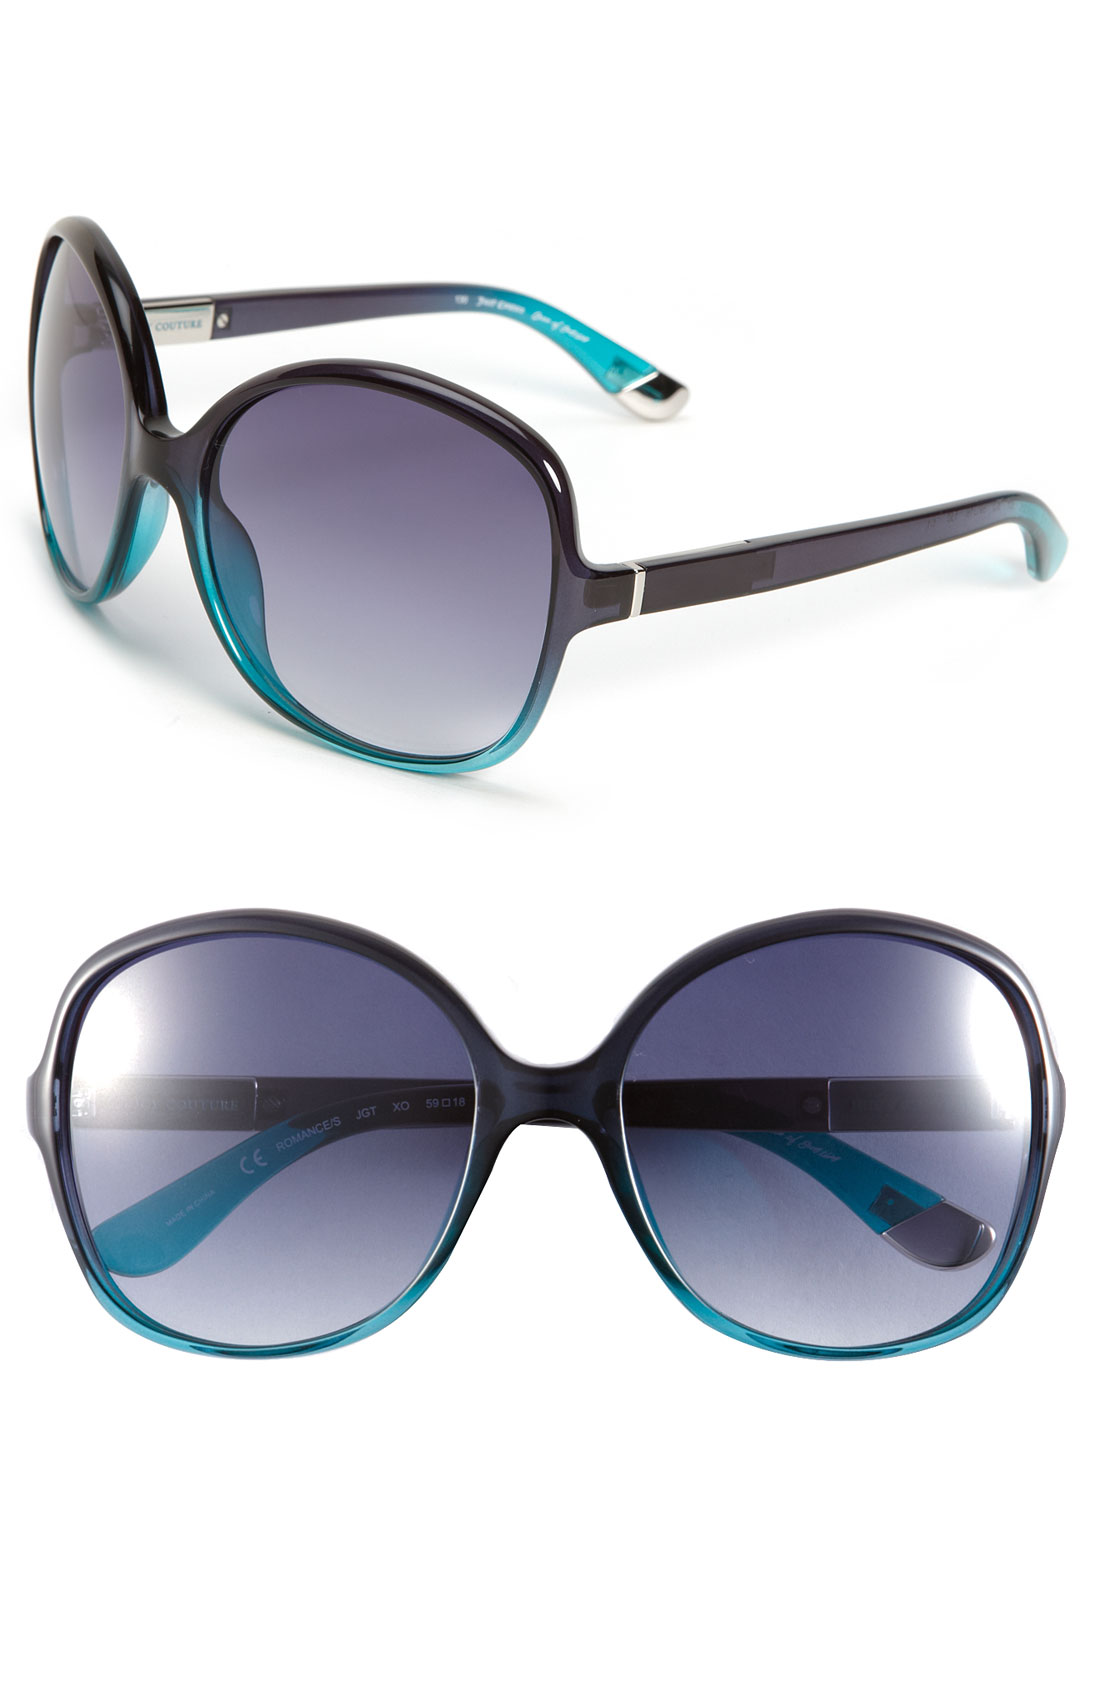 Juicy Couture Oversized Sunglasses in Blue (navy teal)   Lyst